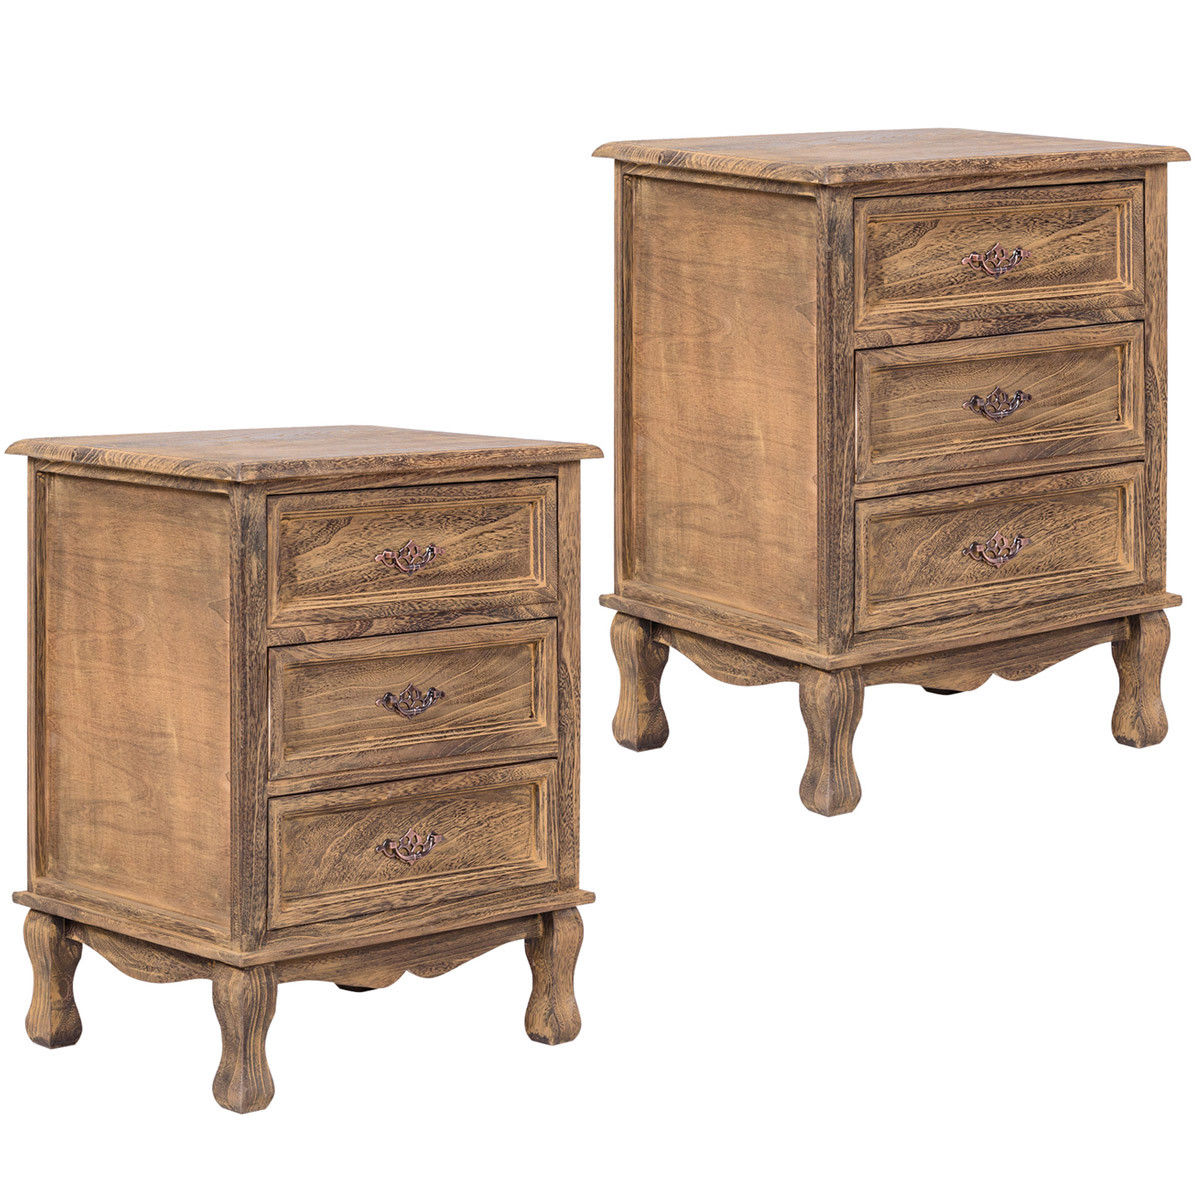 Gymax 2PCS 3 Drawers Nightstand Storage Wood End Table Side Bedside